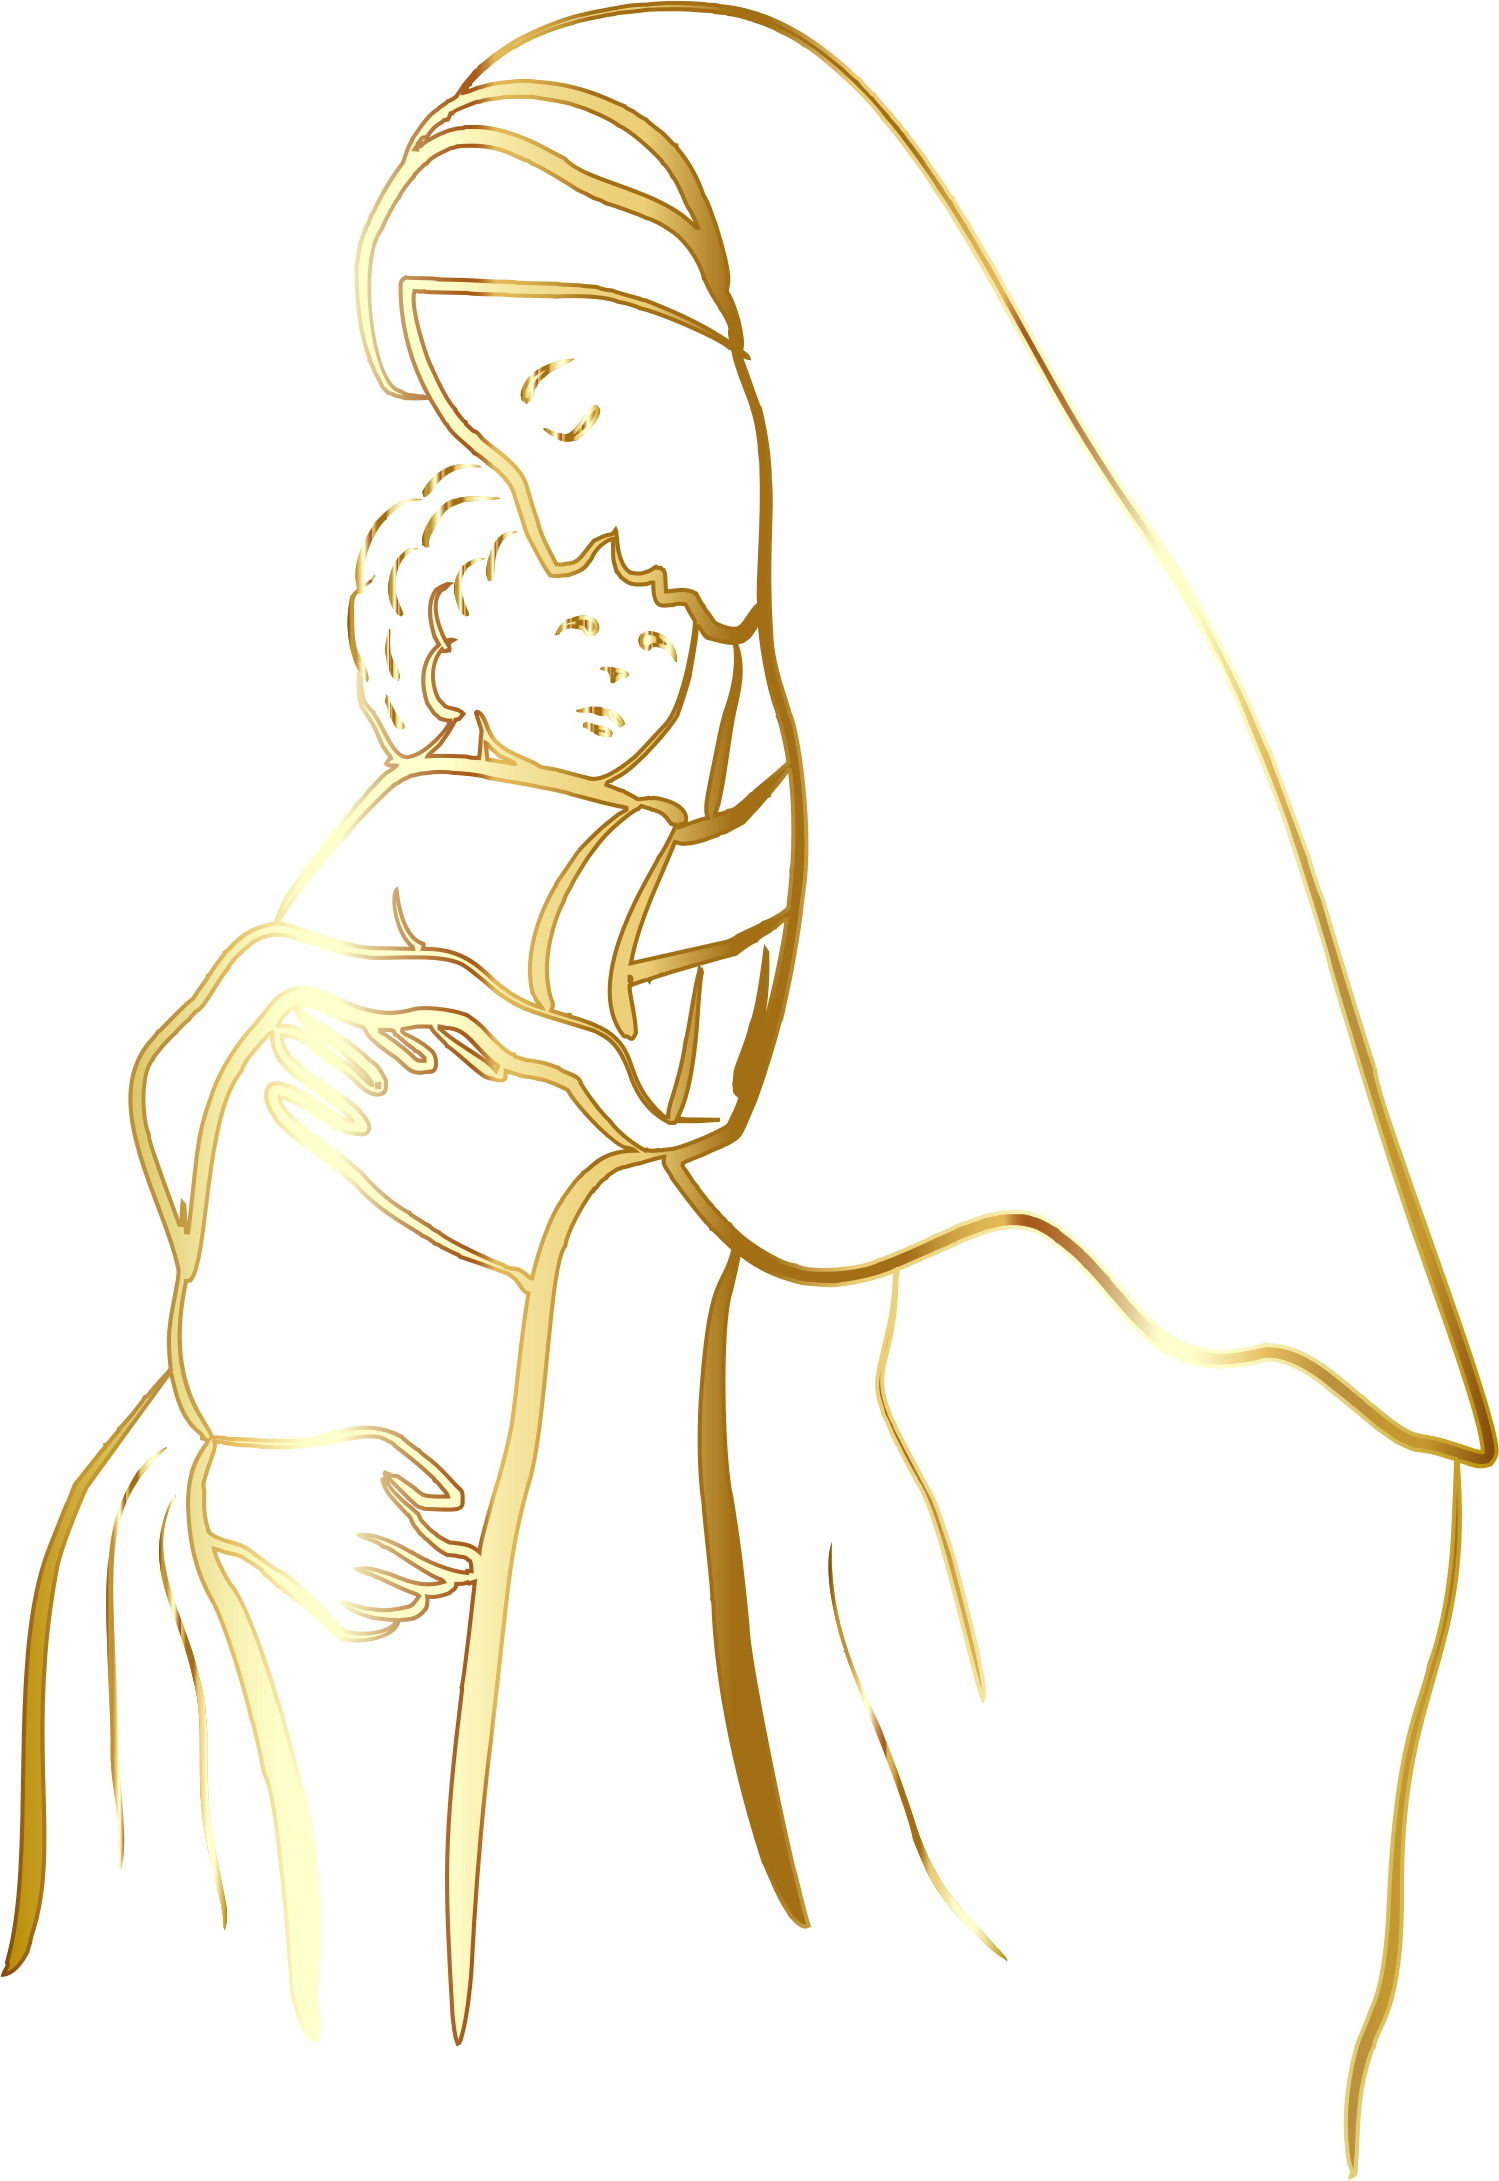 Mary and jesus playing clipart banner royalty free library Clipart - Gold Virgin Mary And Baby Jesus No Background banner royalty free library